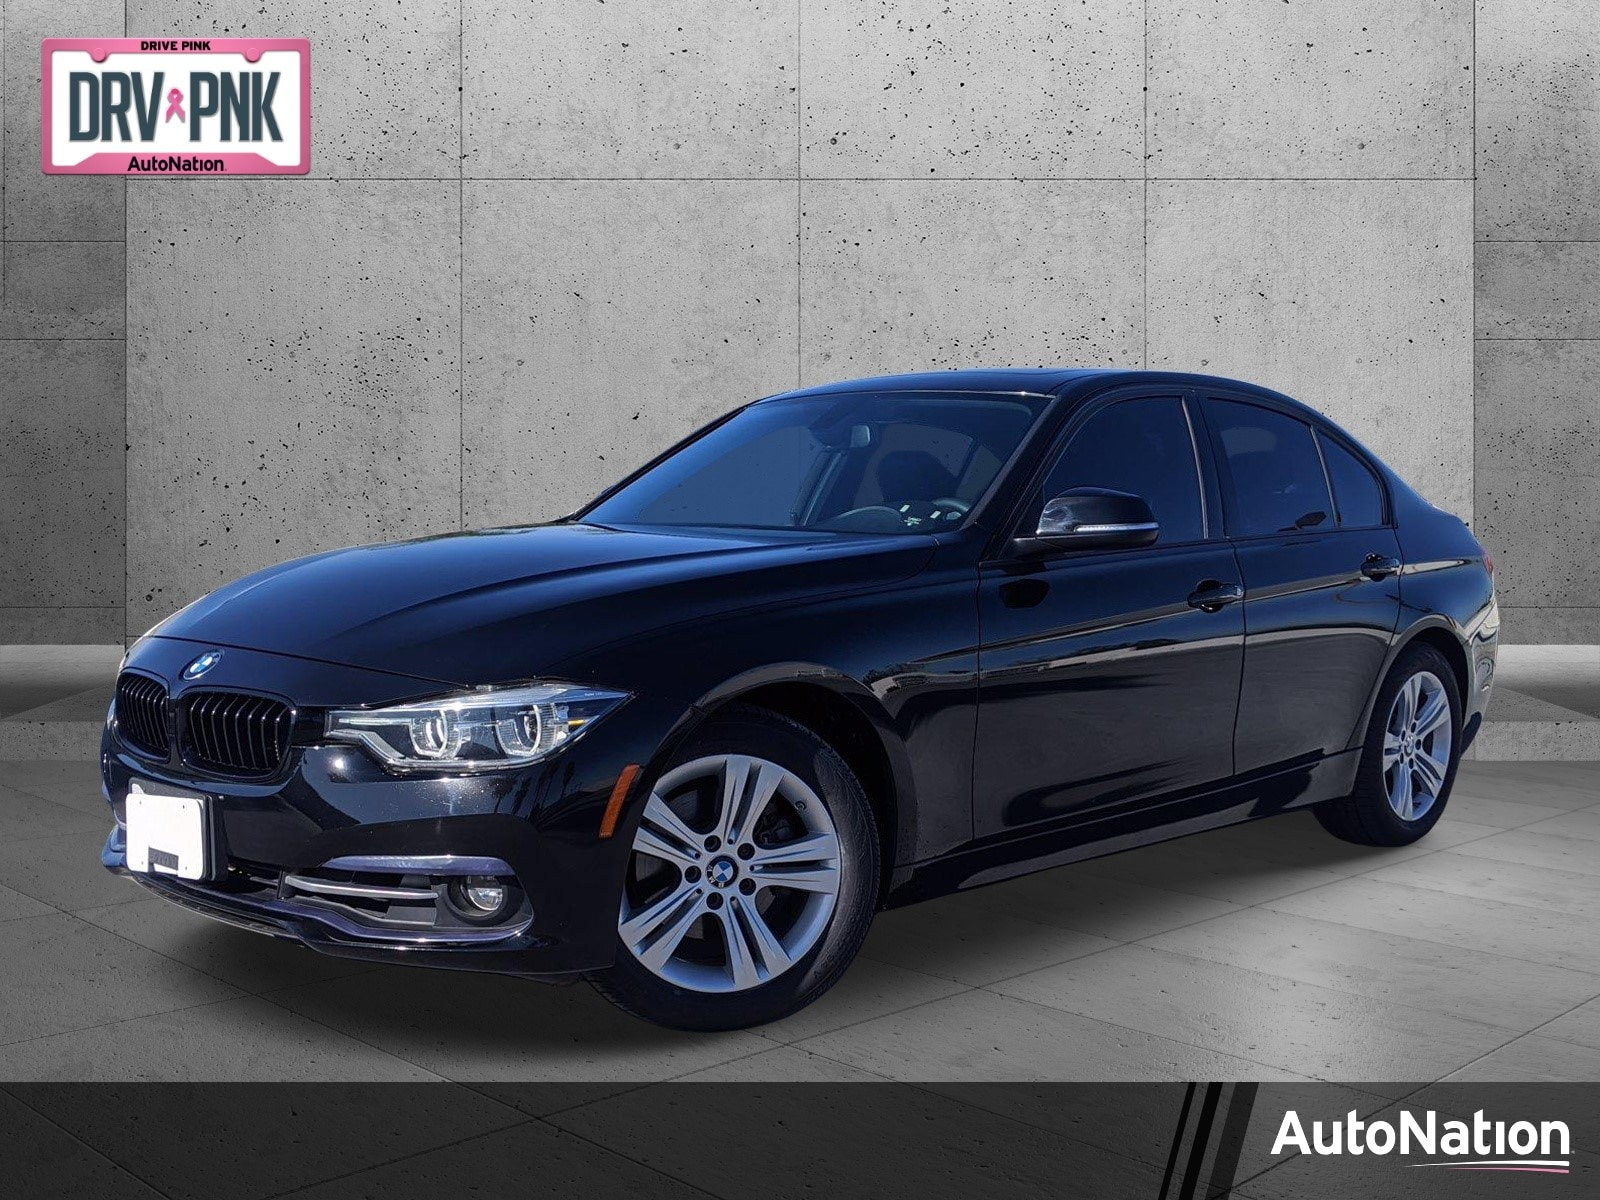 Pre Owned Bmw Vehicles For Sale In Buena Park Ca